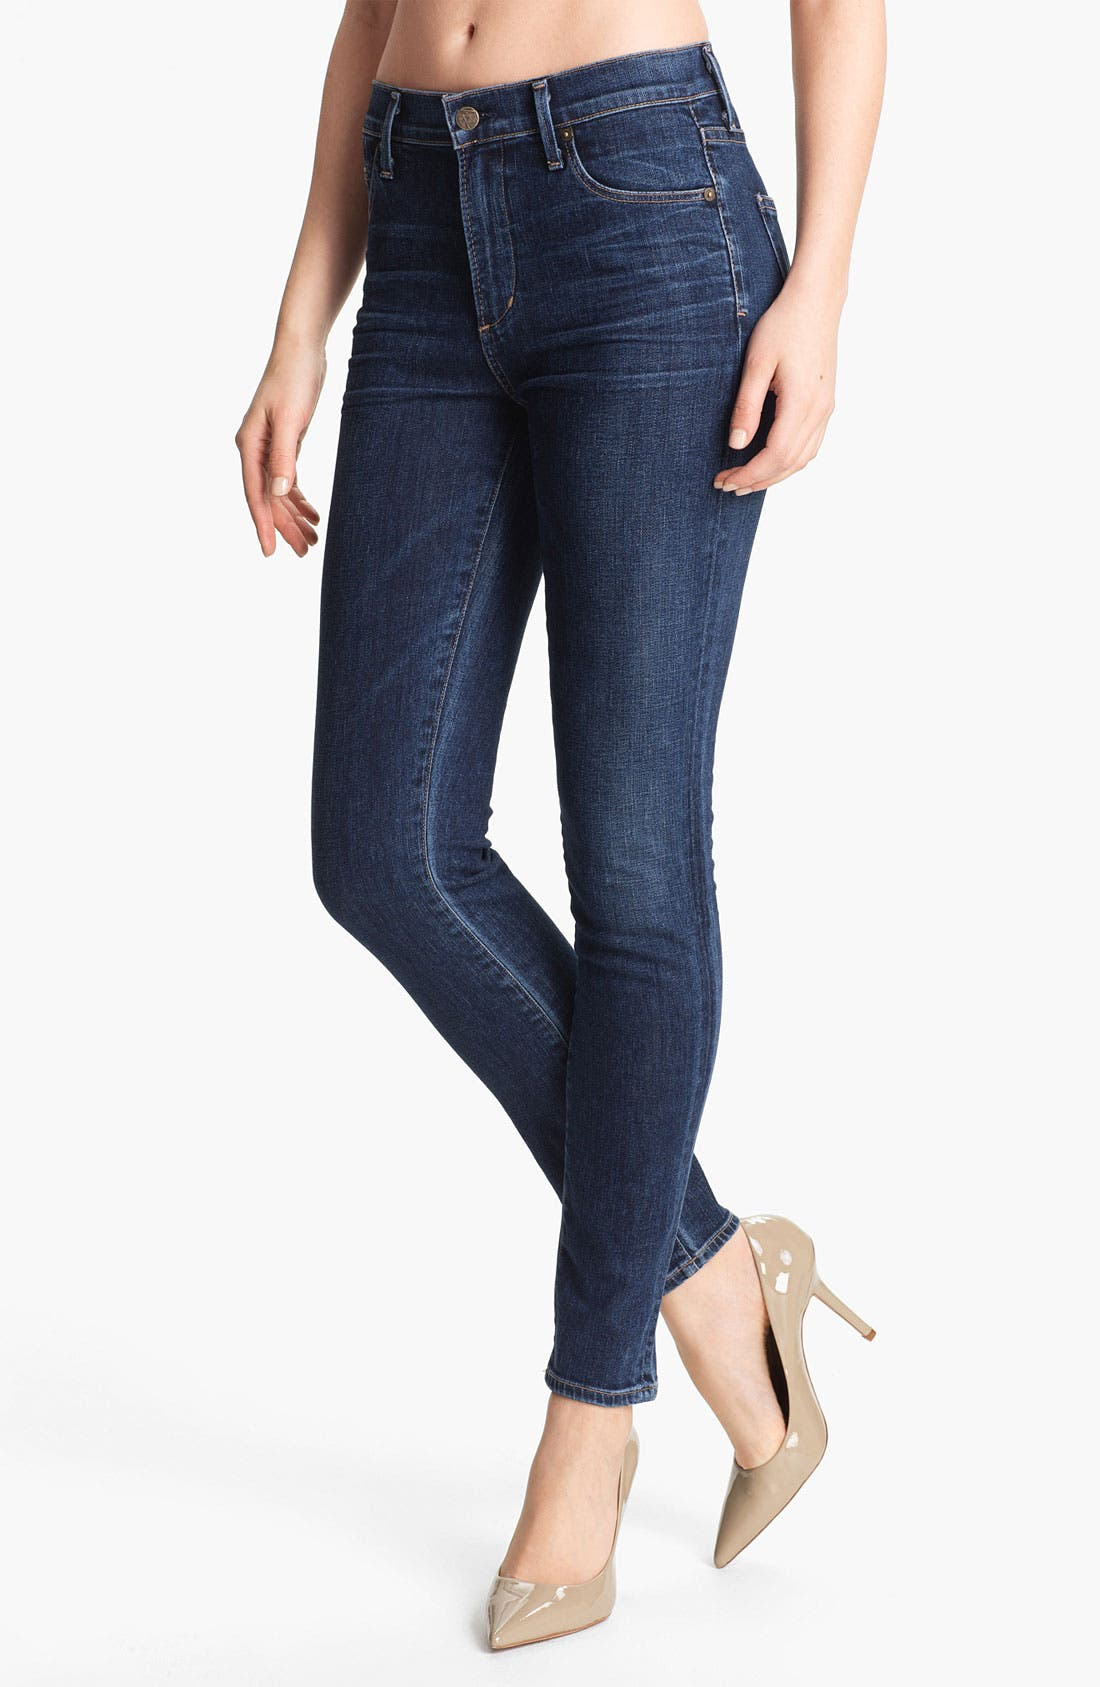 Main Image - Citizens of Humanity 'Rocket' High Rise Skinny Jeans (Crispy)